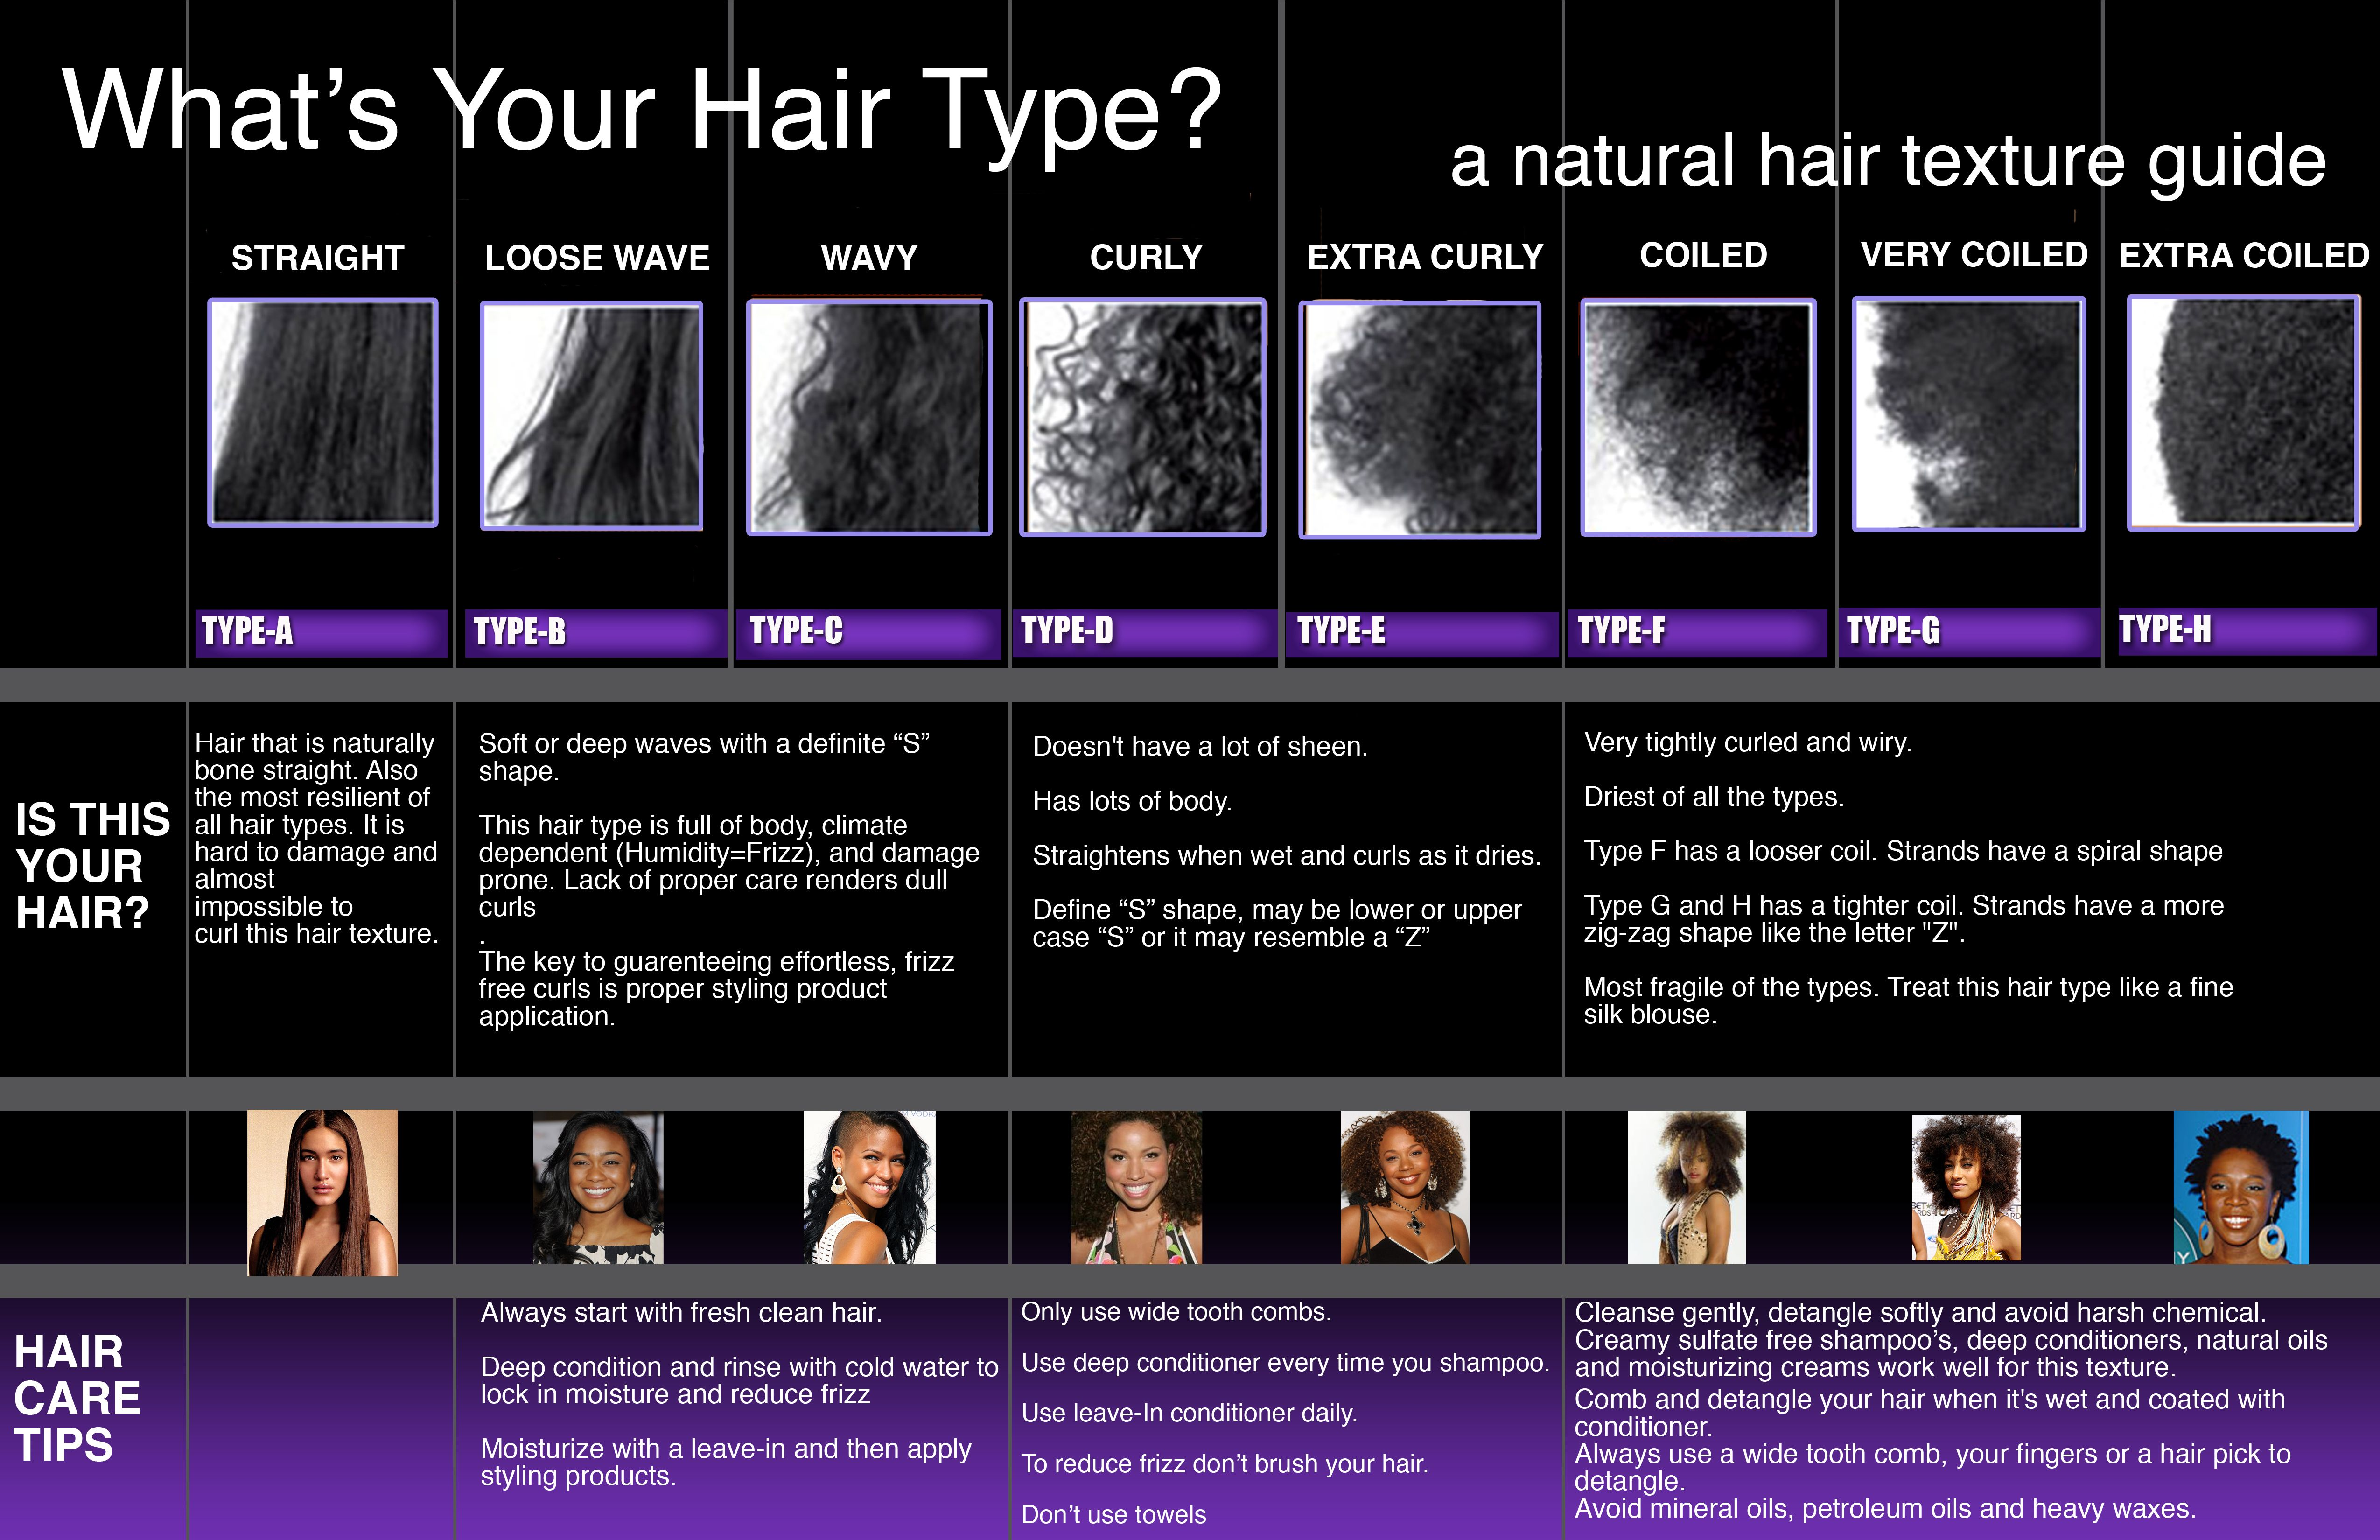 Whatus your hair type hair pinterest hair type what s and